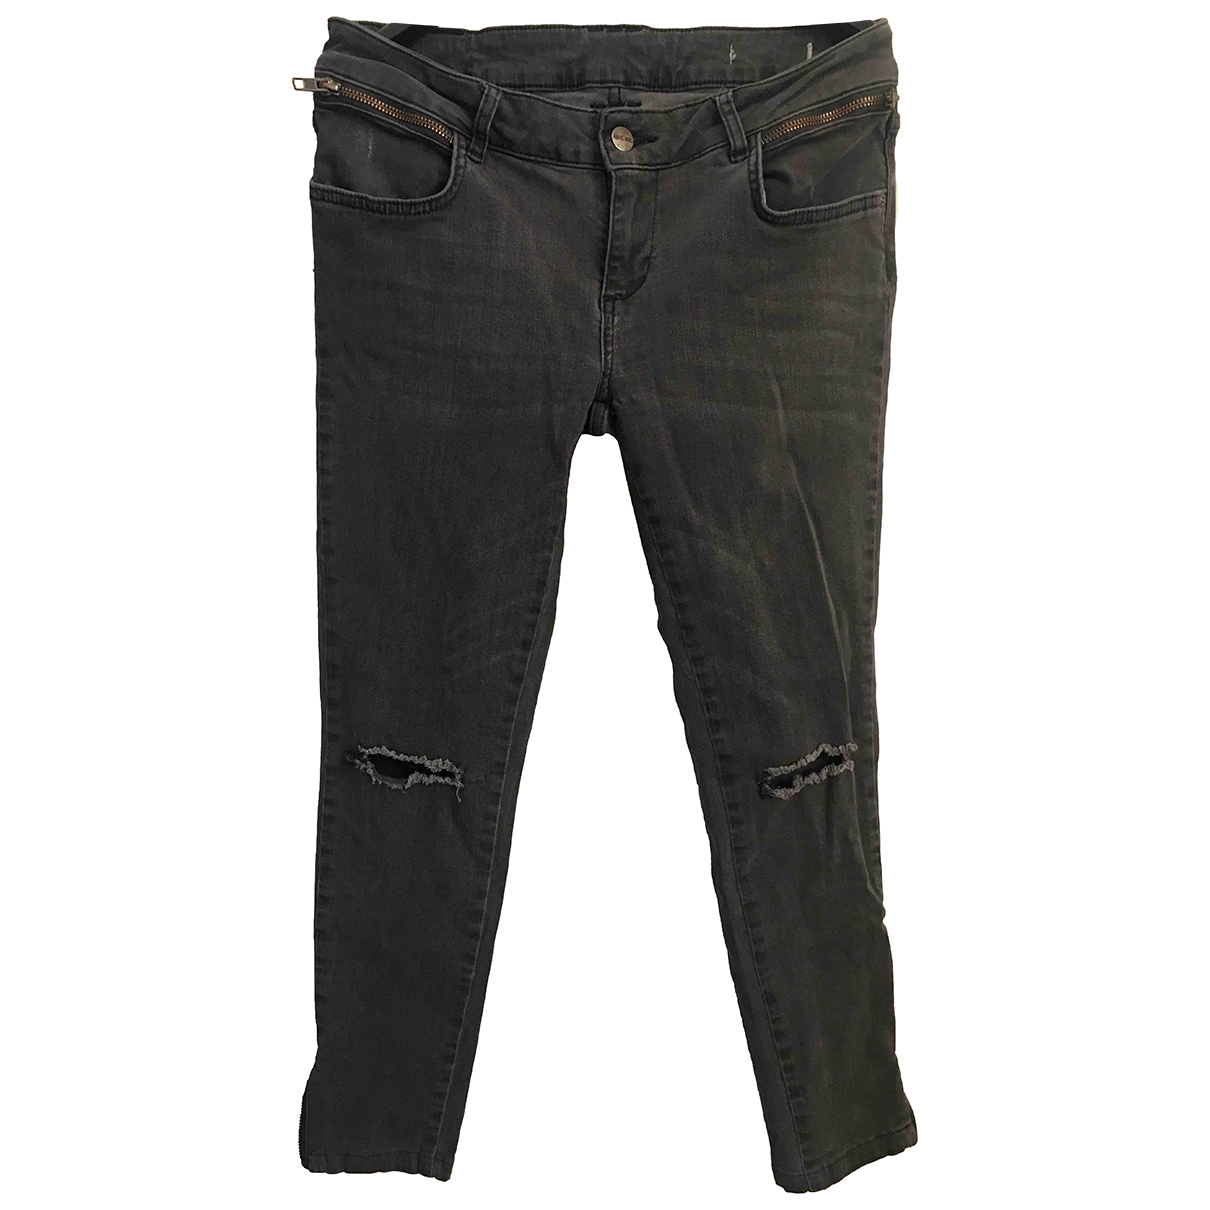 Anine Bing \N Anthracite Cotton - elasthane Jeans for Women 28 US